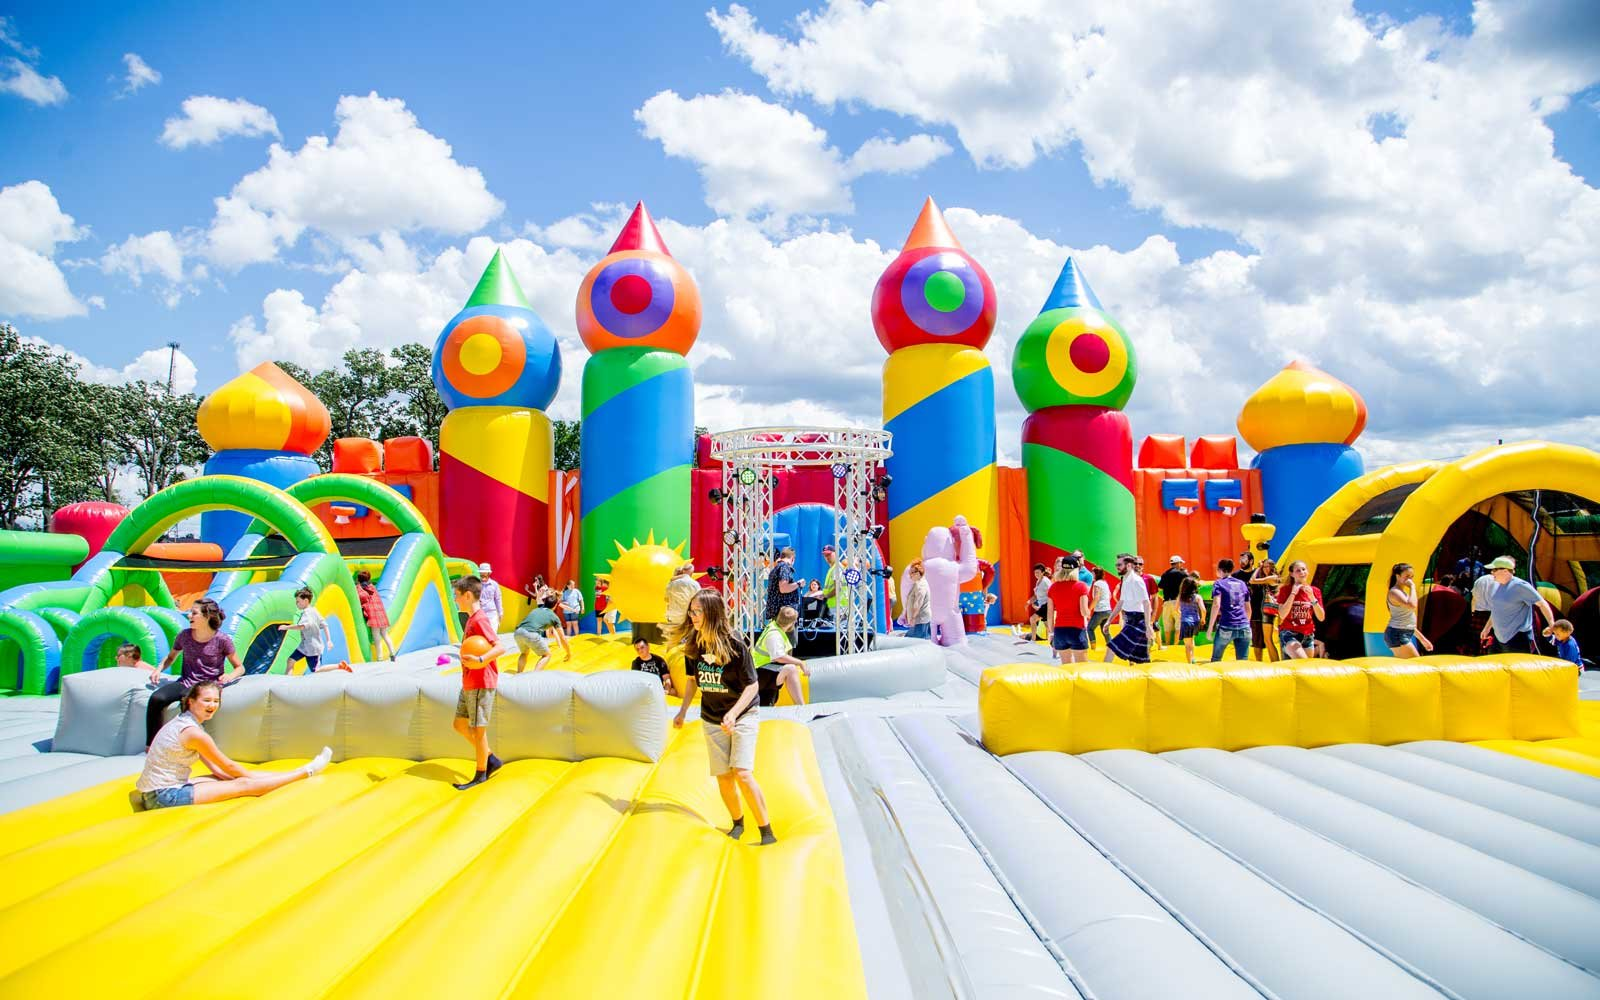 Big Bounce America - Biggest Bounce House